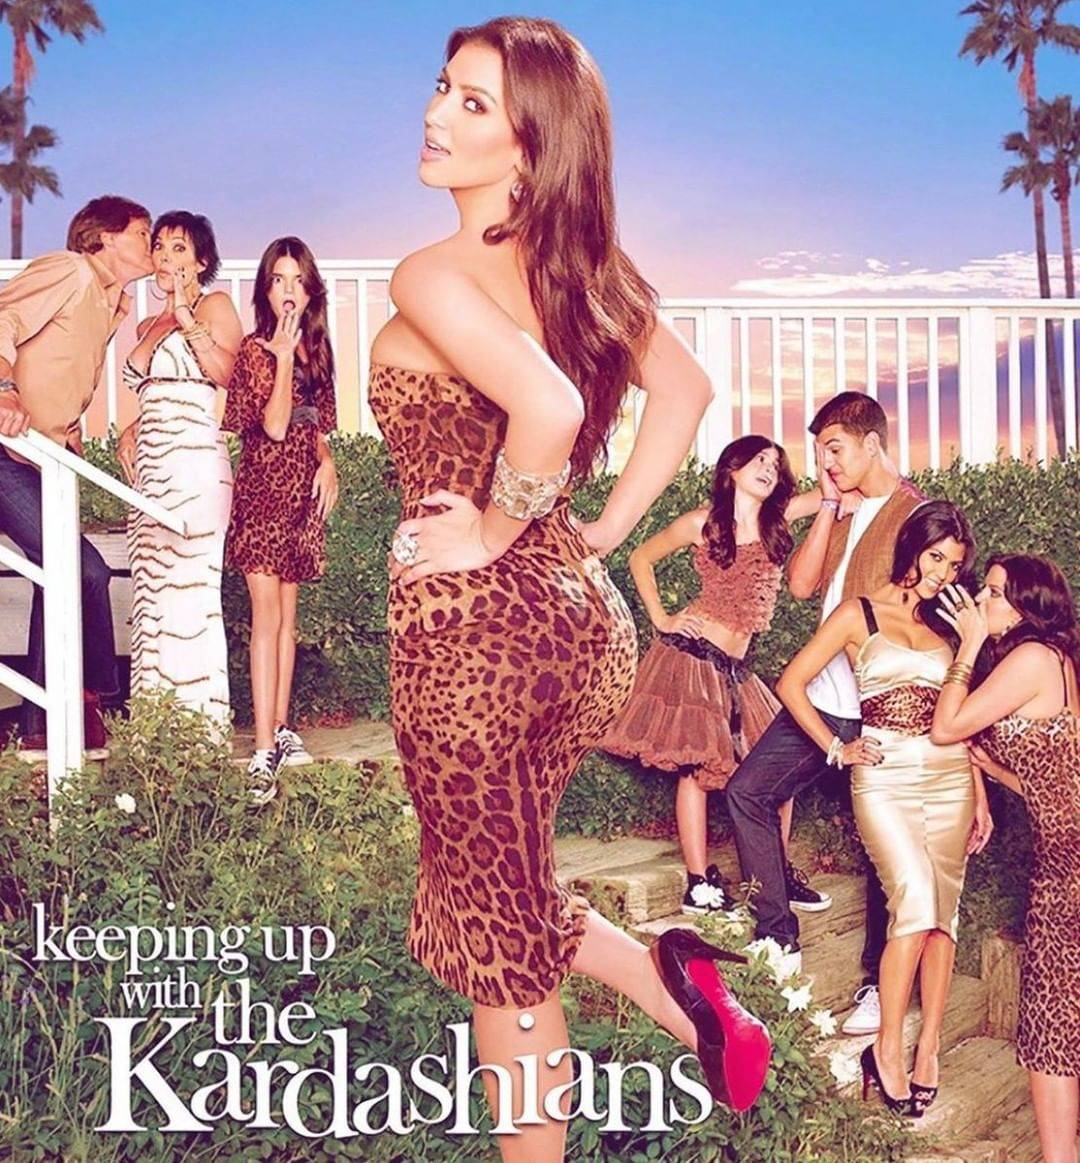 keeping up with the kardashians early season poster